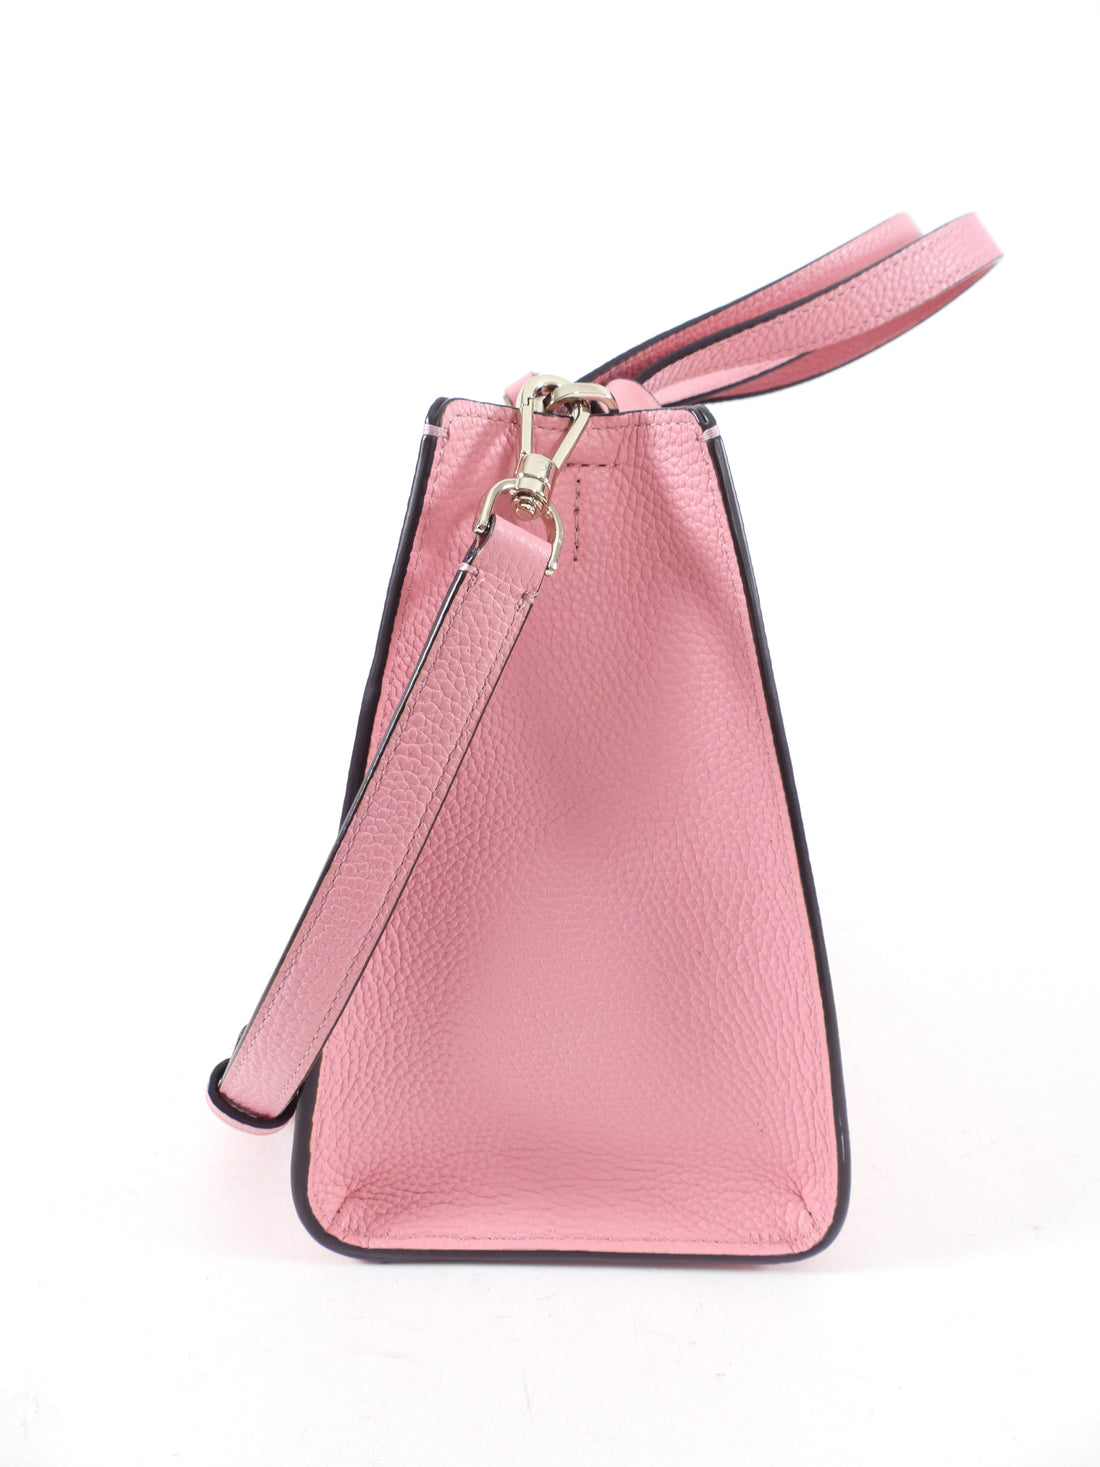 Kate Spade Small Pink Satchel Two-Way Bag with Pouch